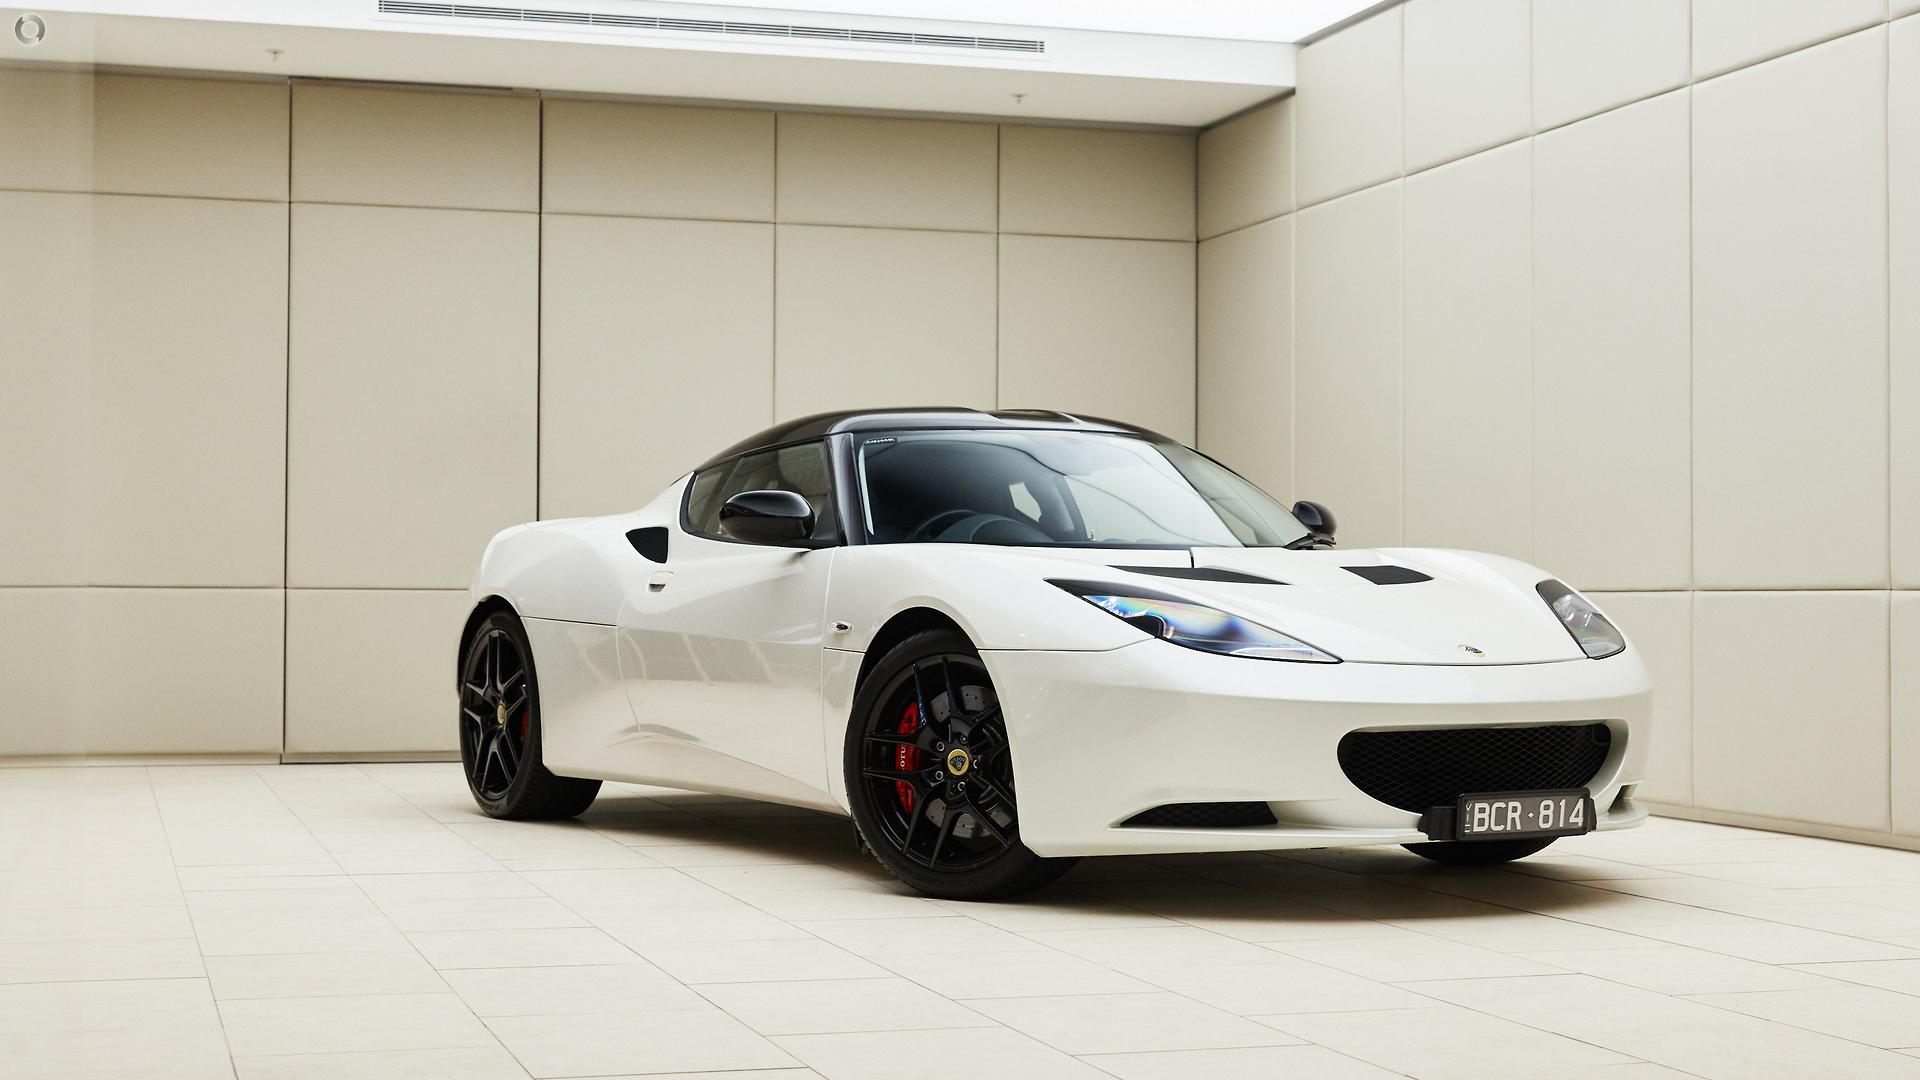 2010 Lotus Evora  Type 122